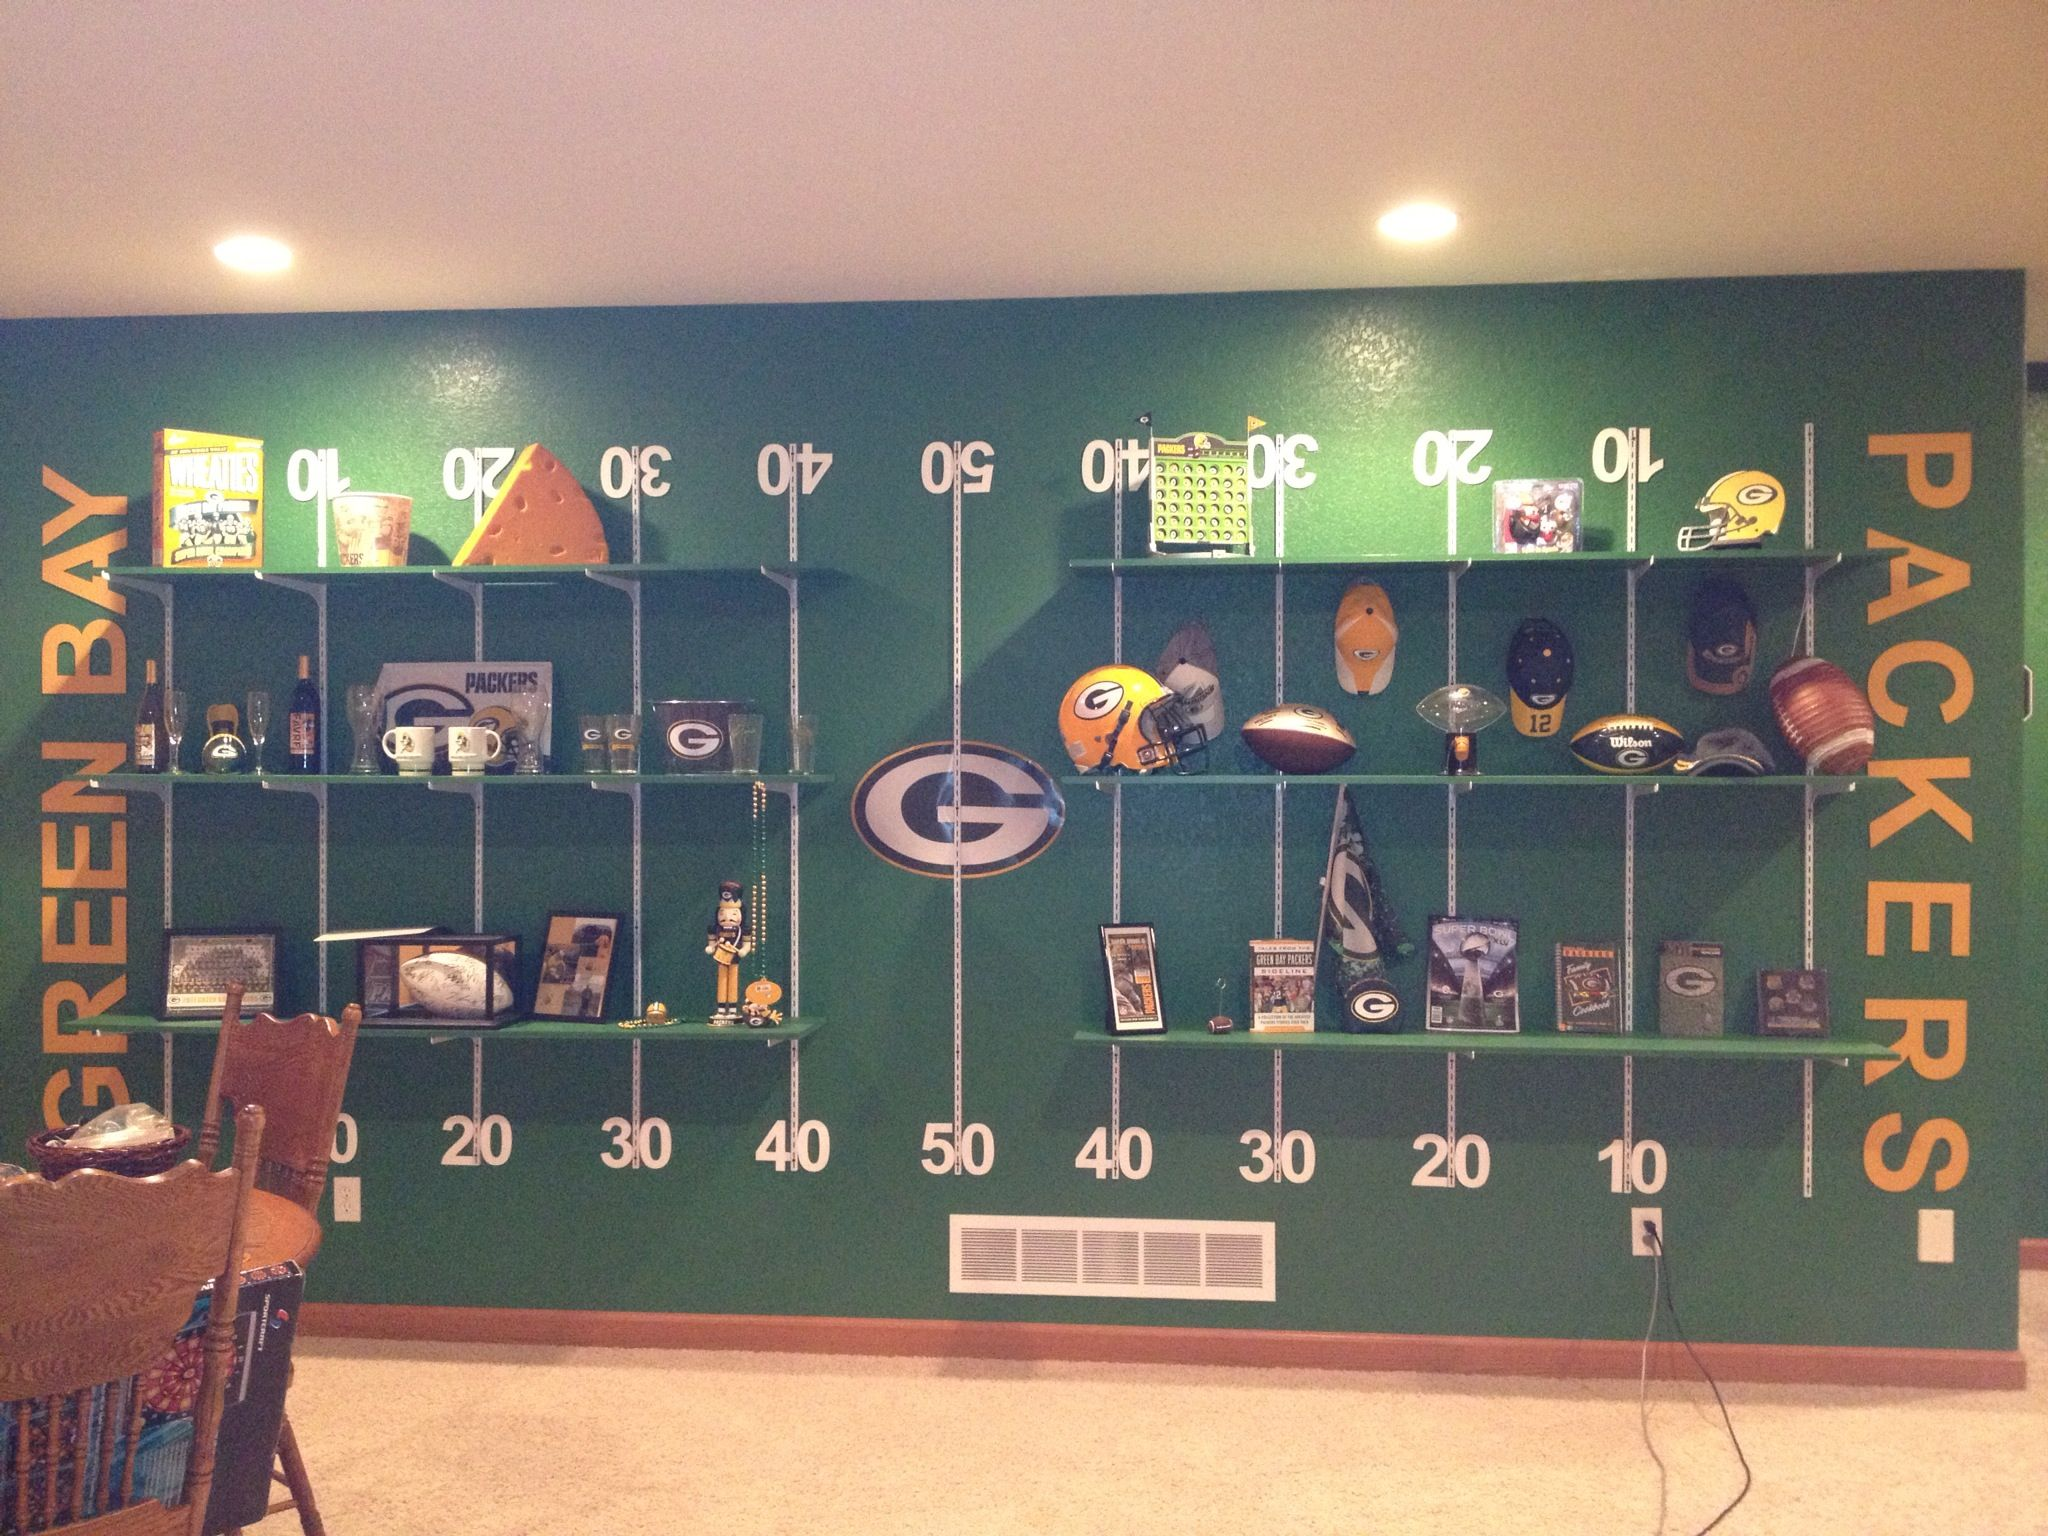 Green Bay Packers Man Cave Decor : Packers wall ideas pinterest walls and men cave